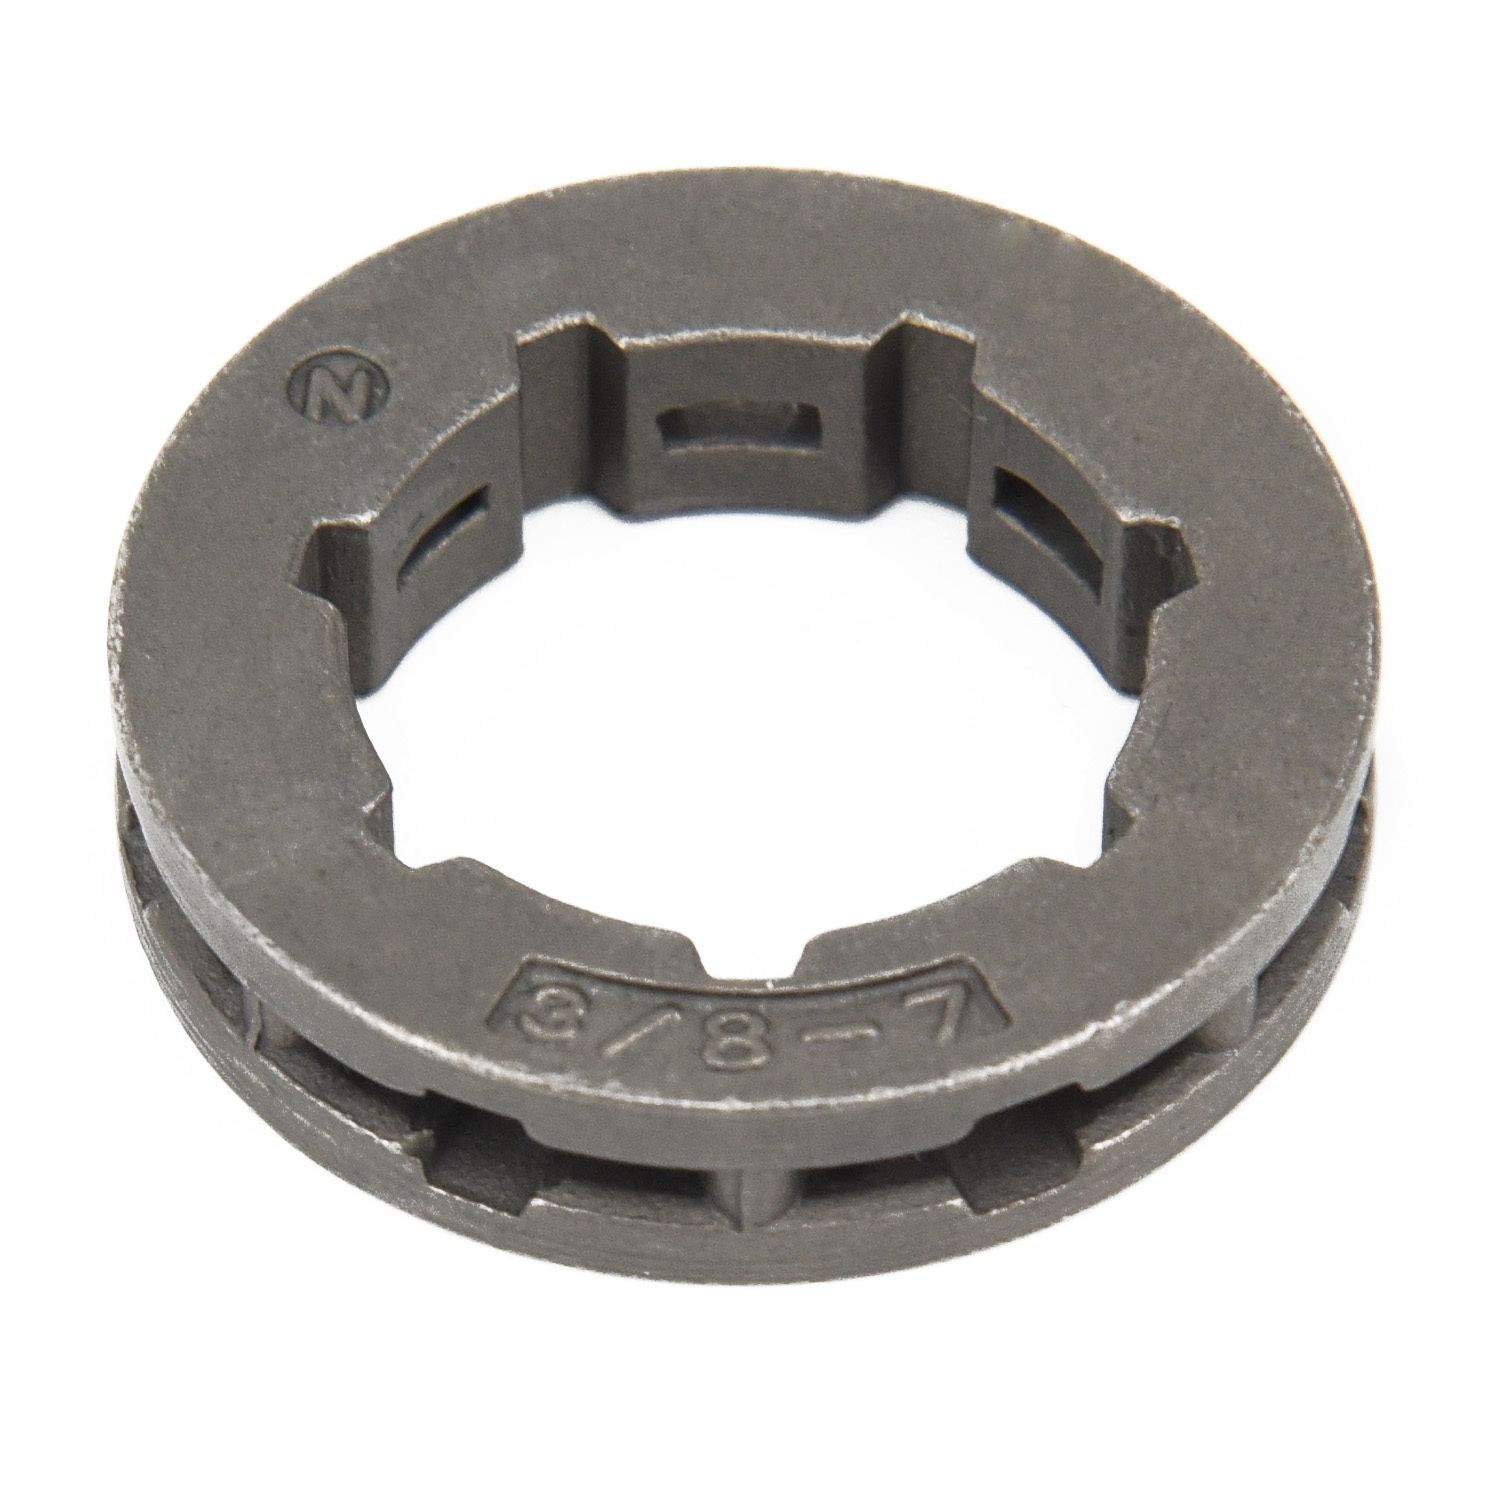 New 3/8 10T Sprocket Rim For Stihl MS720 064 066 MS640 <font><b>MS660</b></font> 084 Kit Chainsaw # image